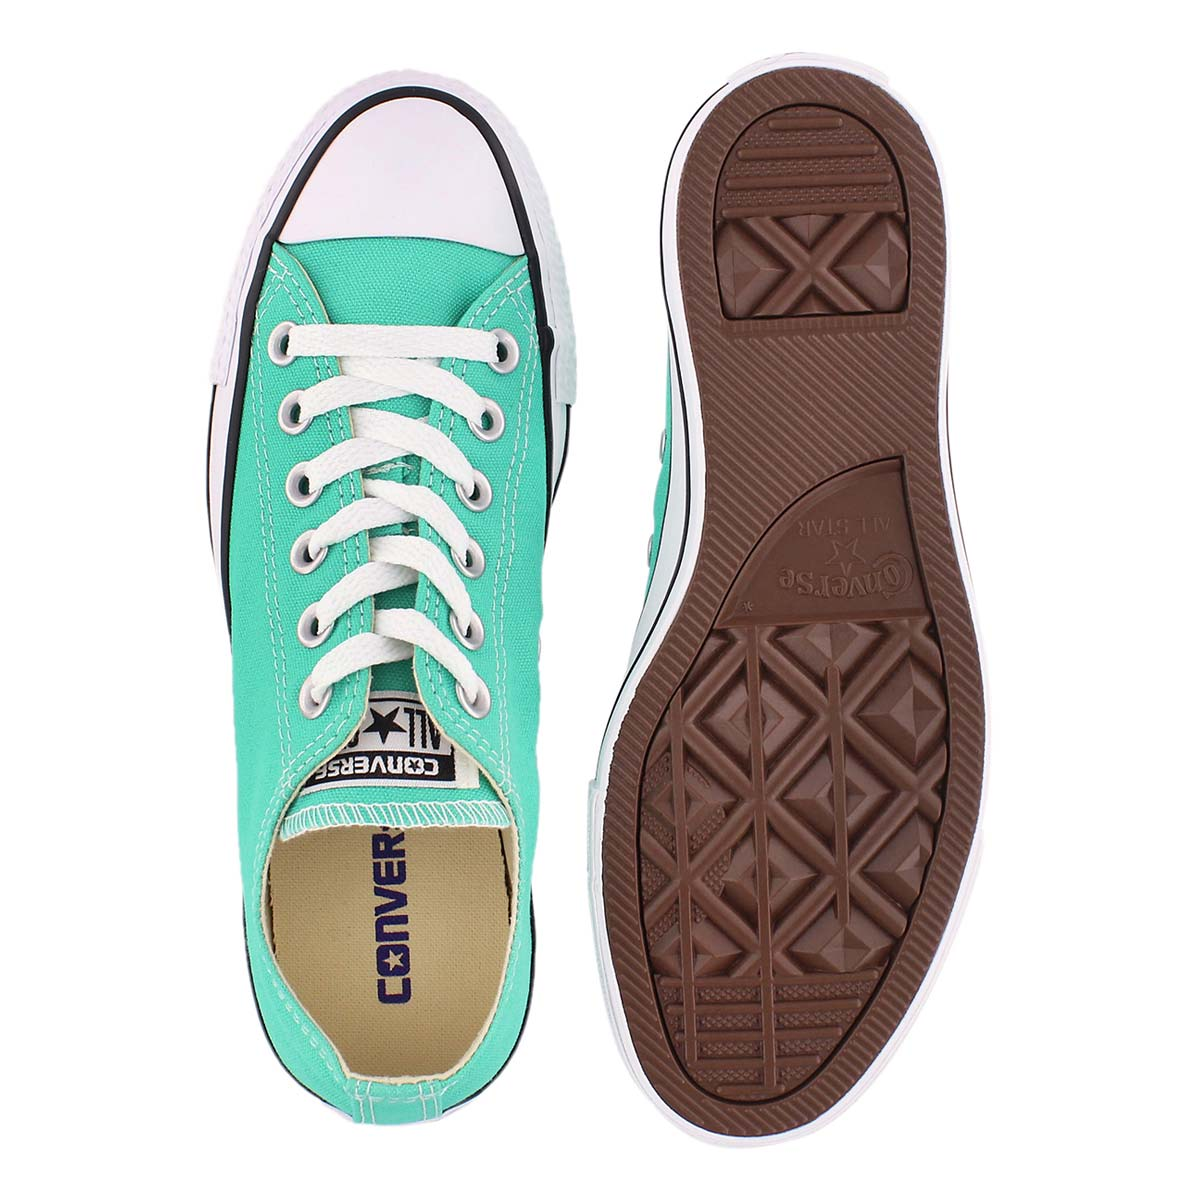 Lds CT A/S Seasonal menta sneaker